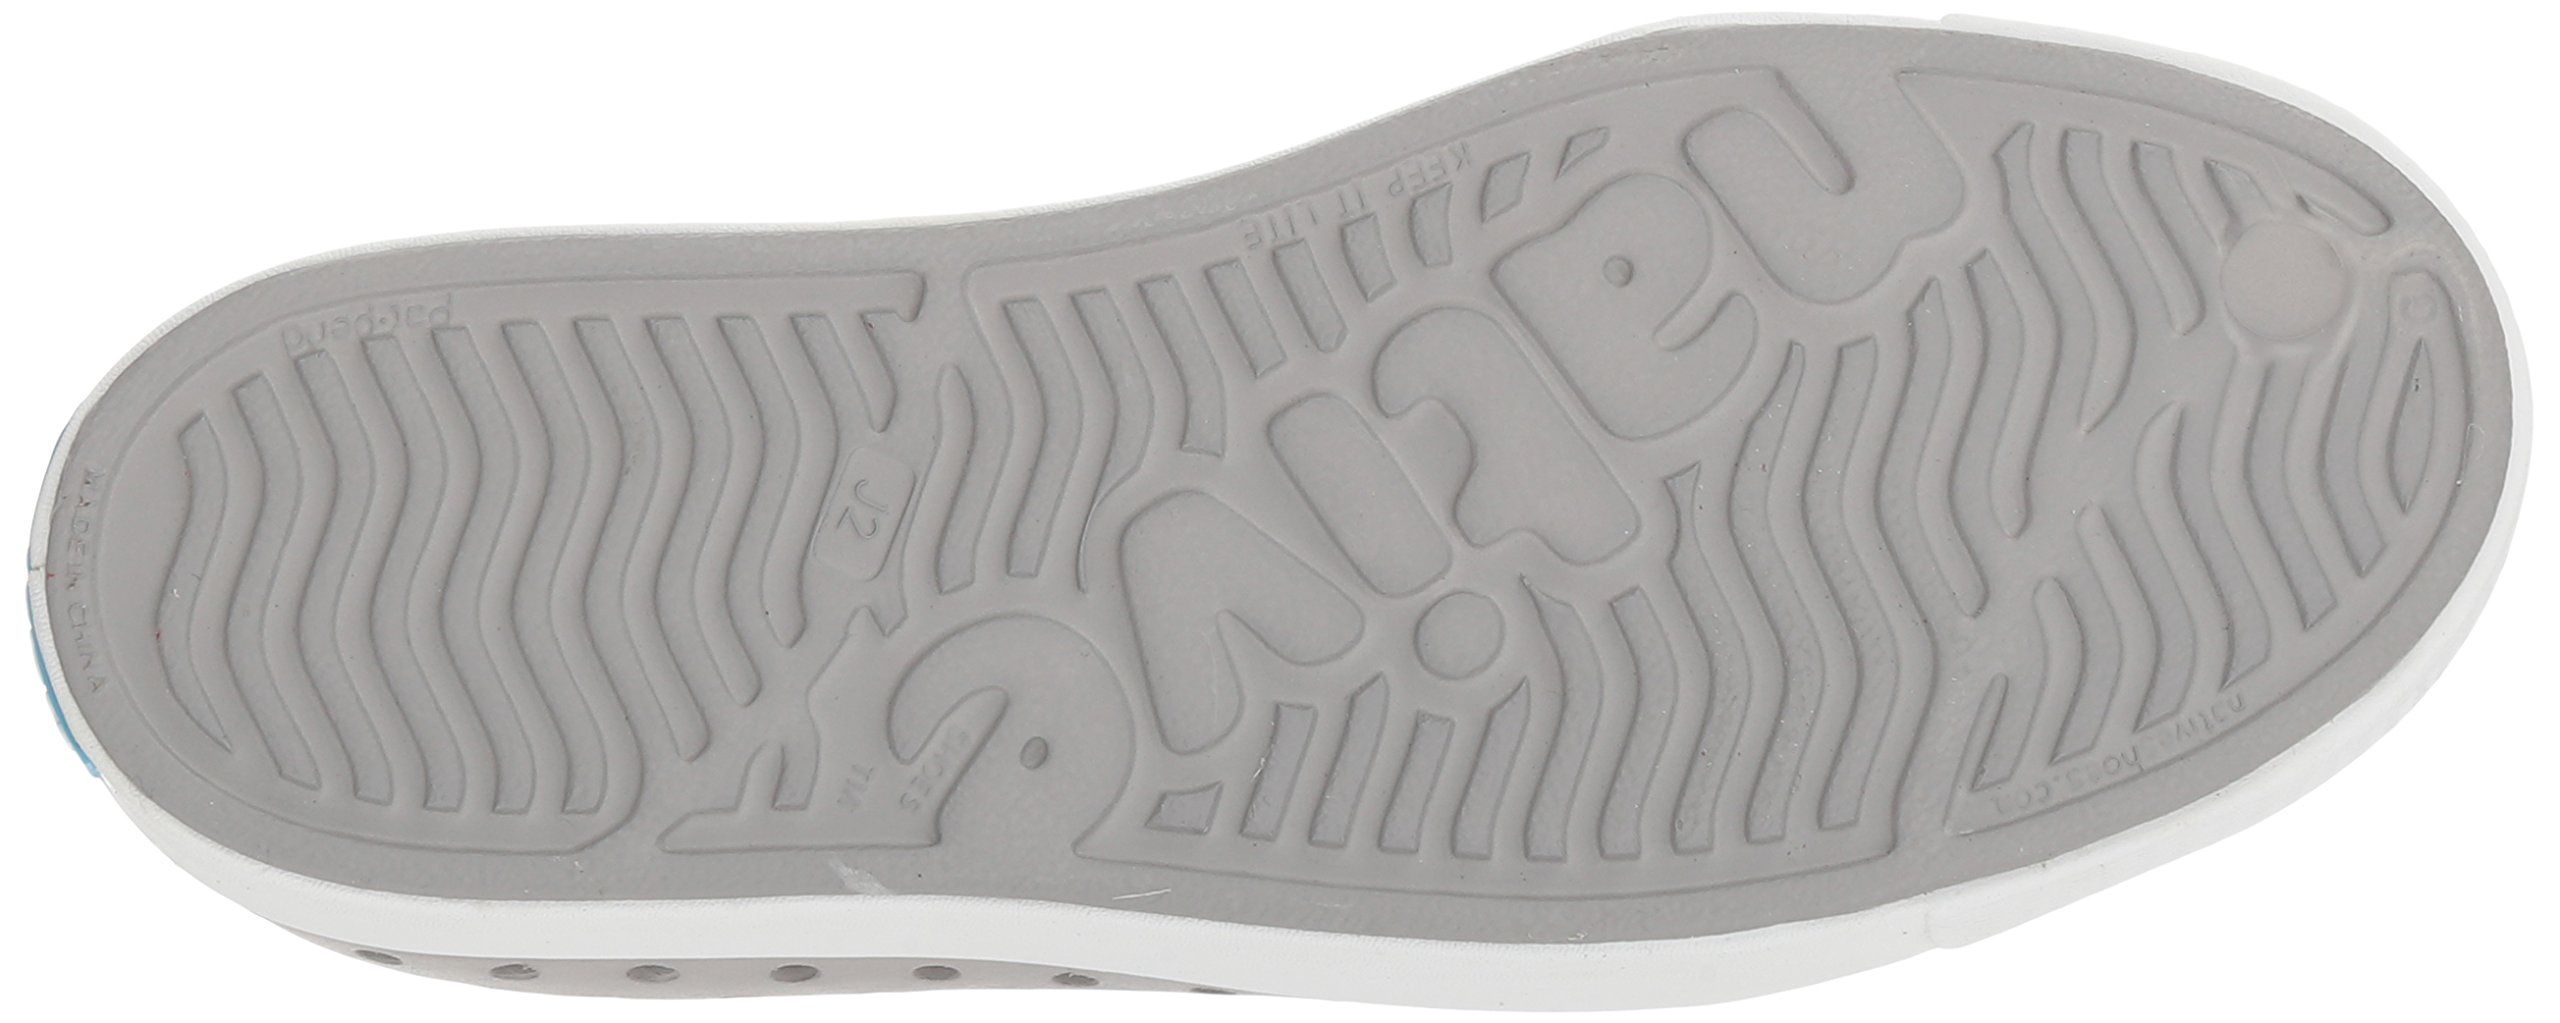 Native Kids Jefferson Junior Water Proof Shoes, Pigeon Grey/Shell White, 2 Medium US Little Kid by Native Shoes (Image #3)